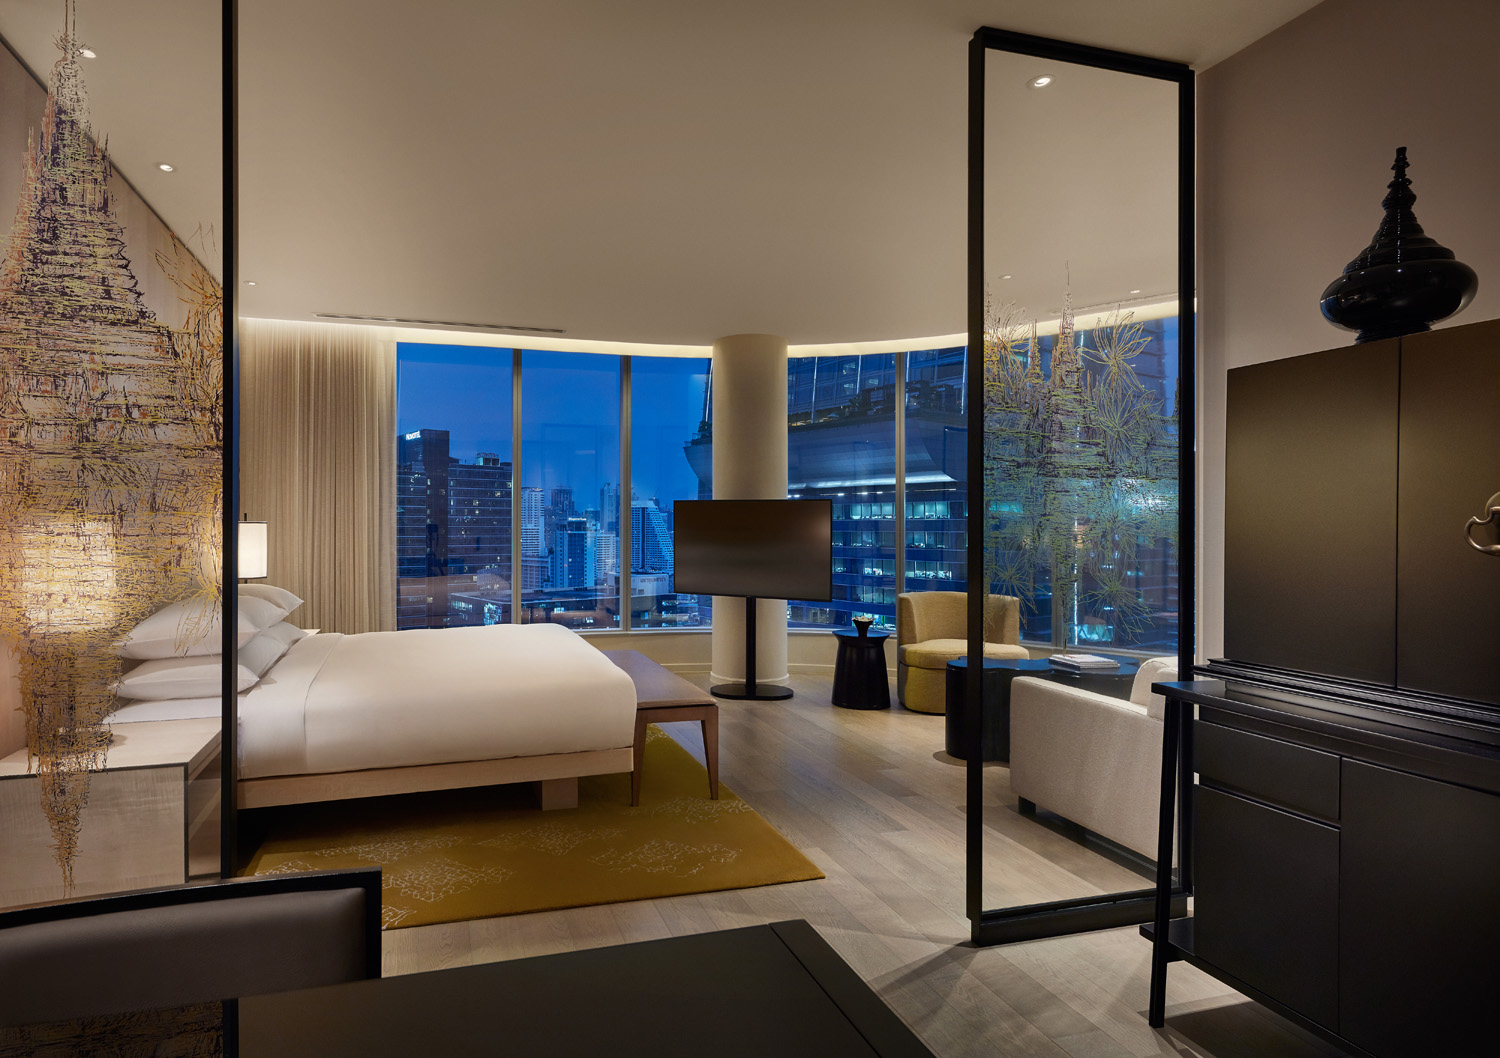 The Park deluxe corner room at Park Hyatt Bangkok